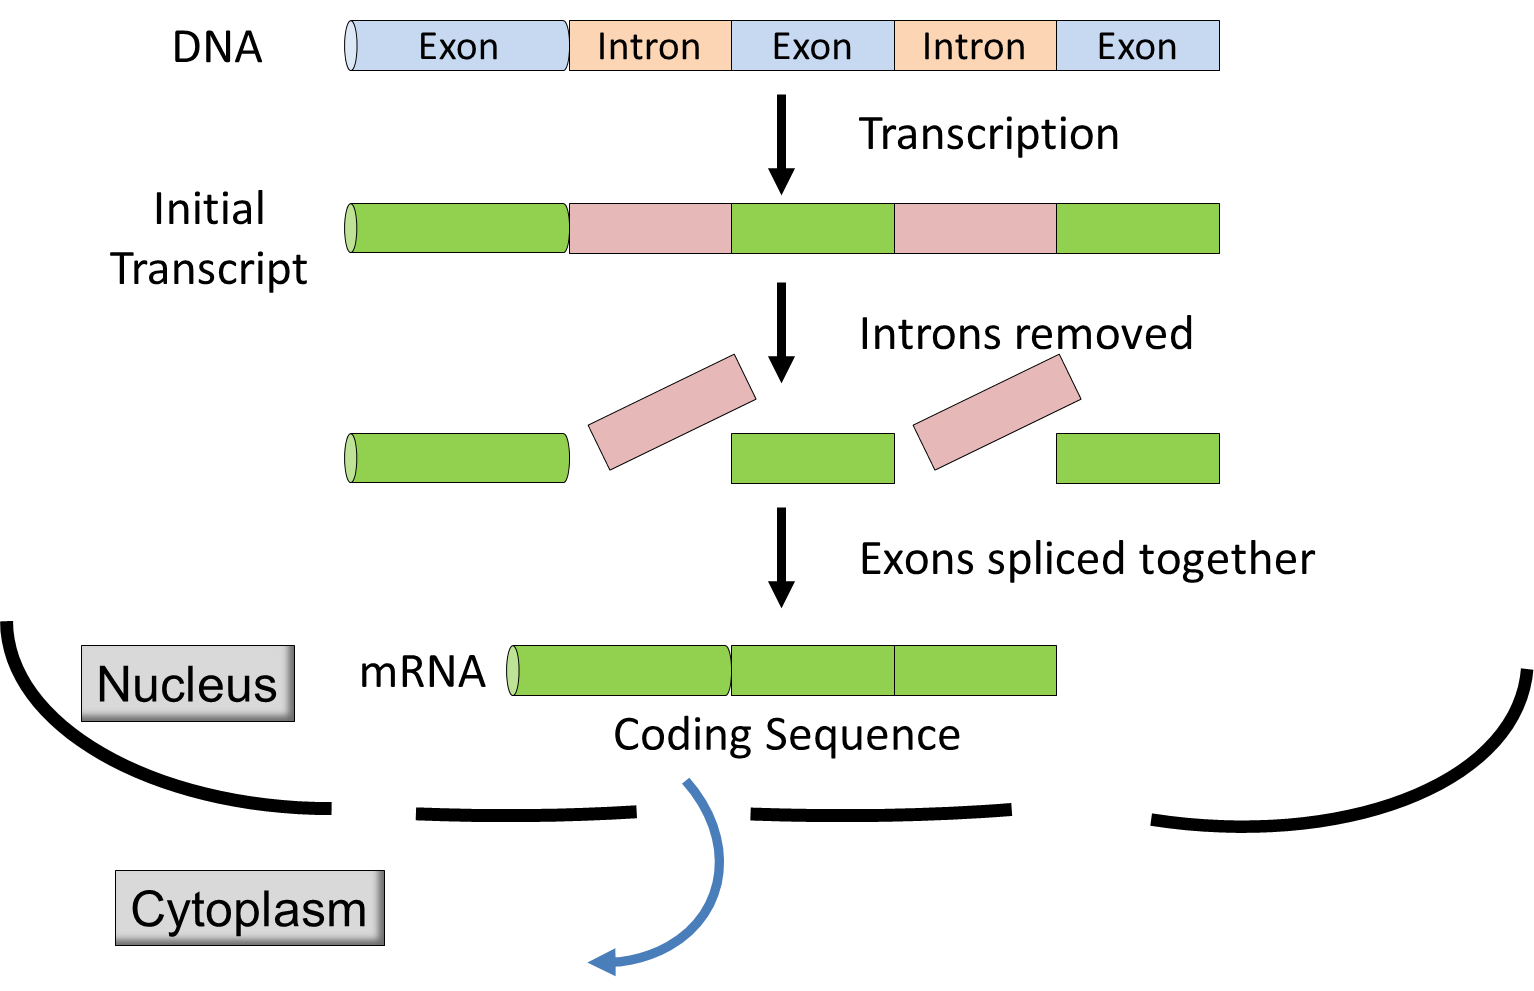 introns and exons Start studying introns and exons learn vocabulary, terms, and more with flashcards, games, and other study tools.